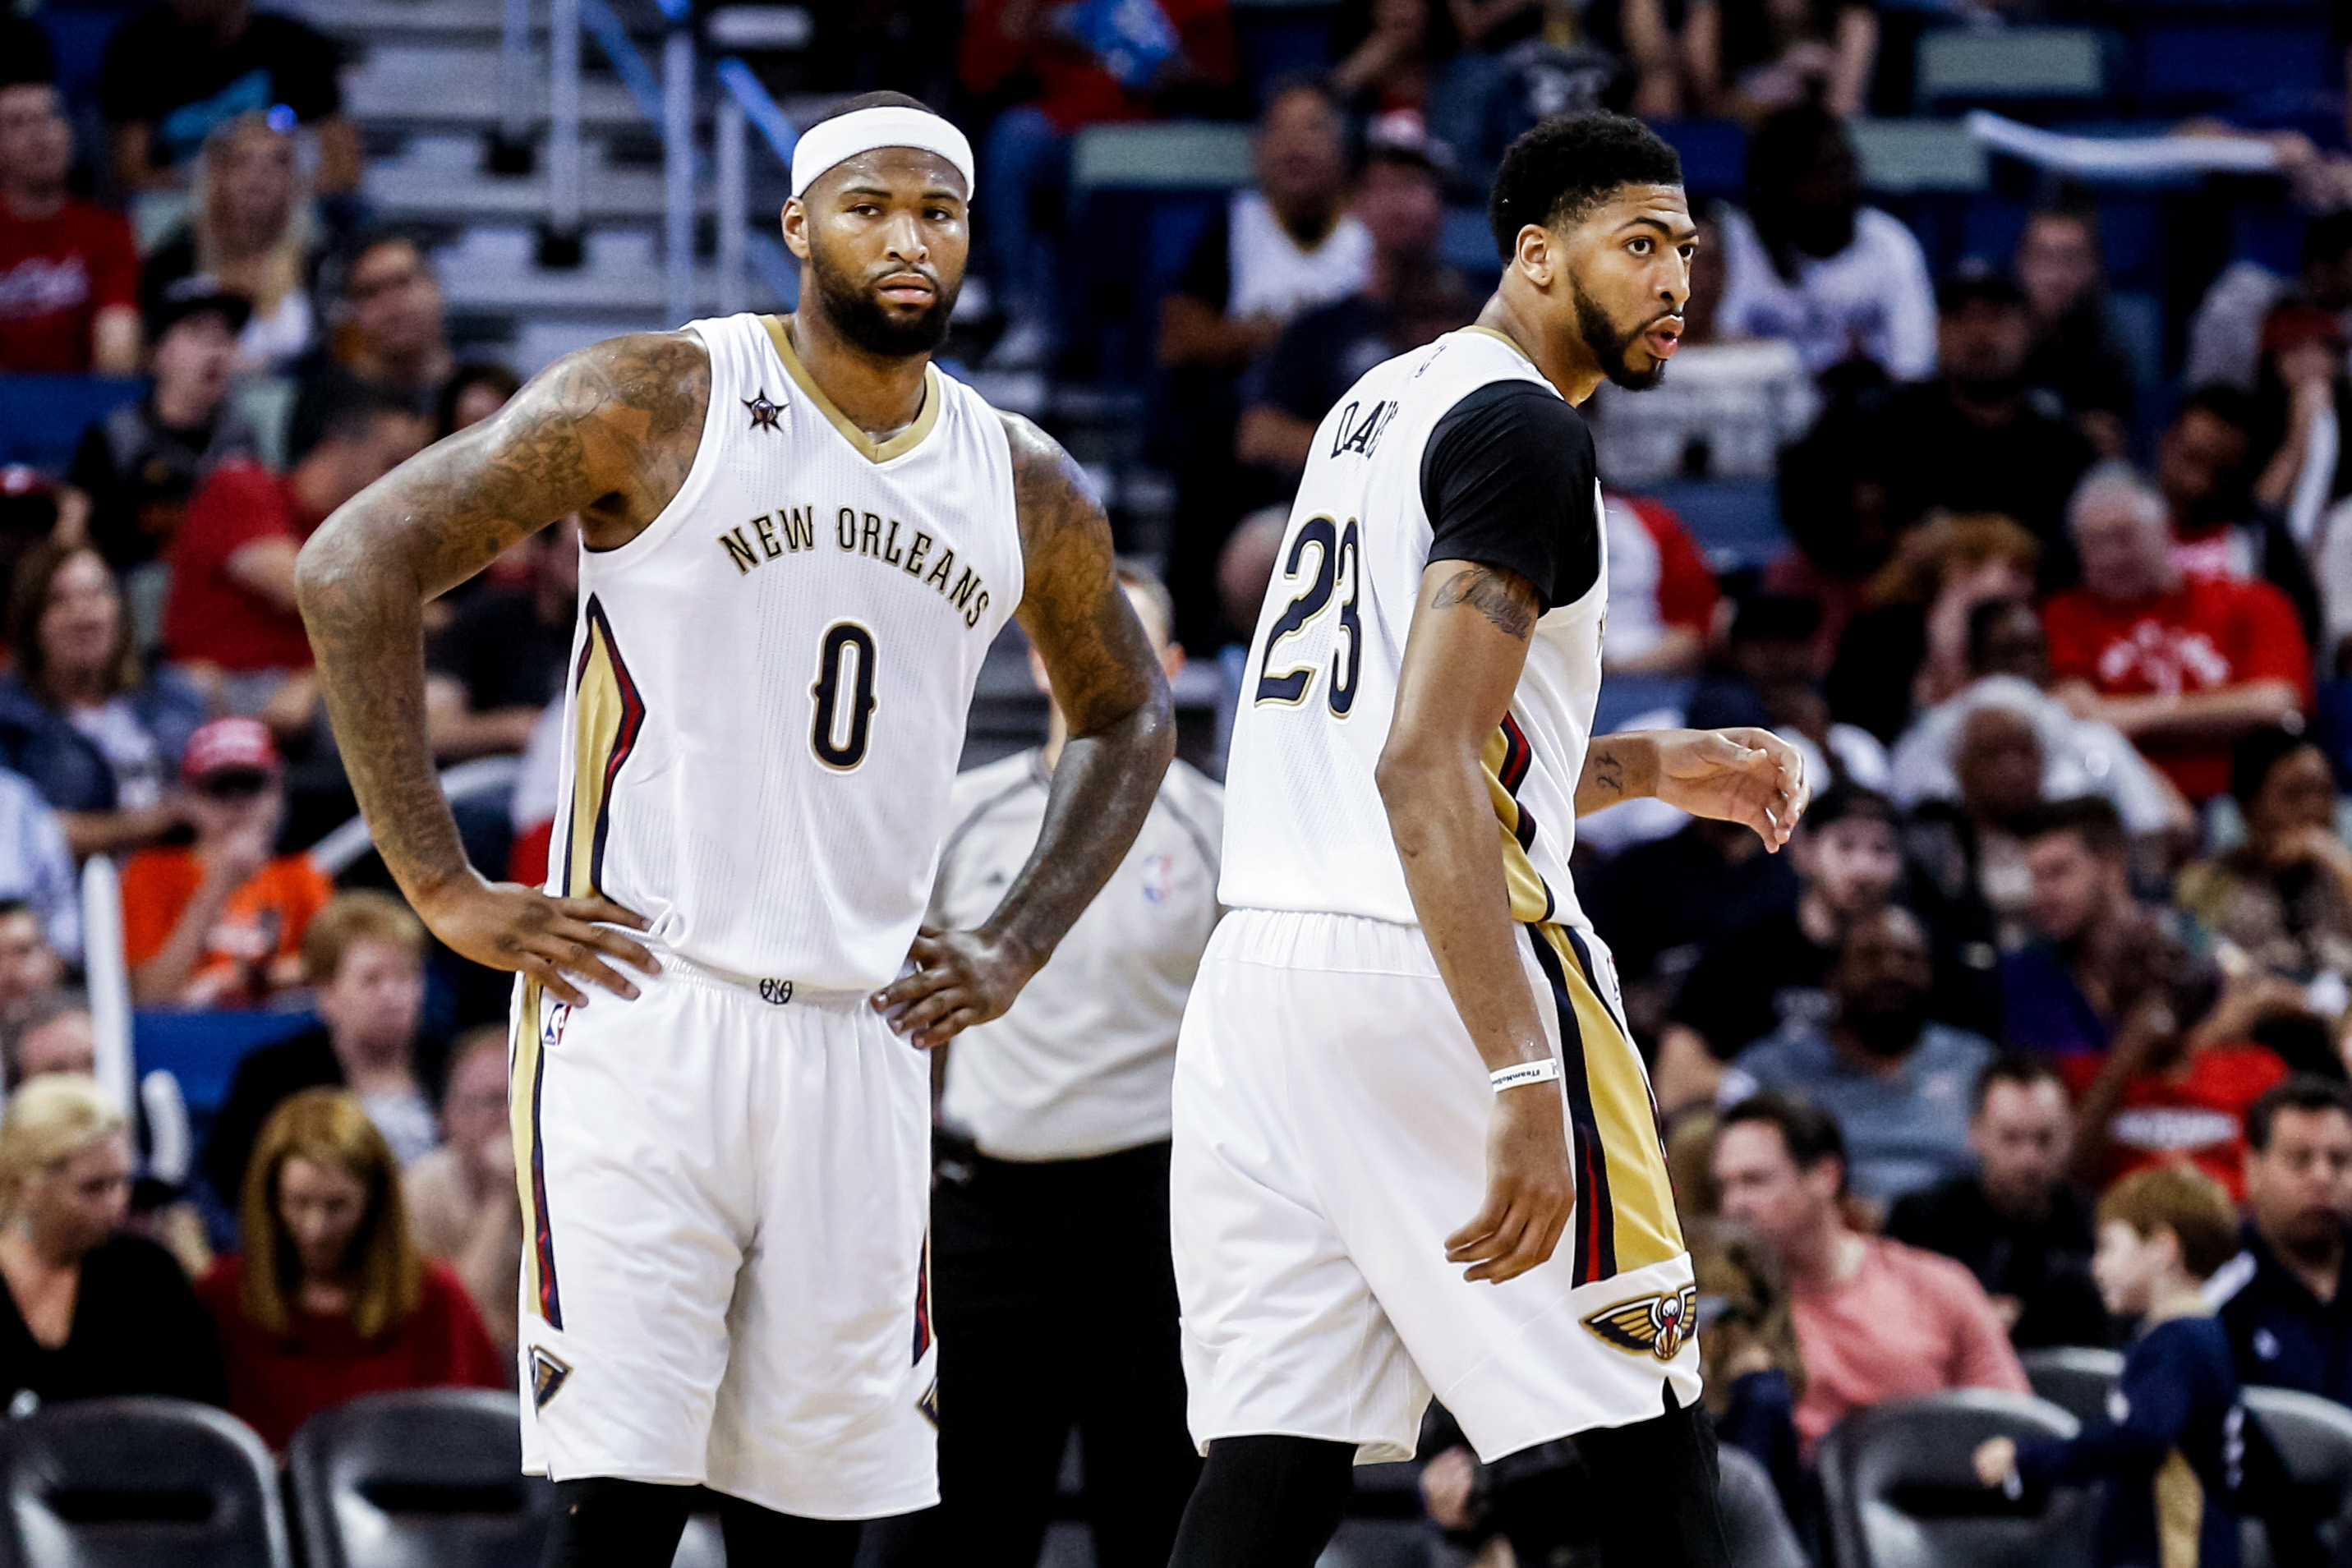 9958950-nba-minnesota-timberwolves-at-new-orleans-pelicans